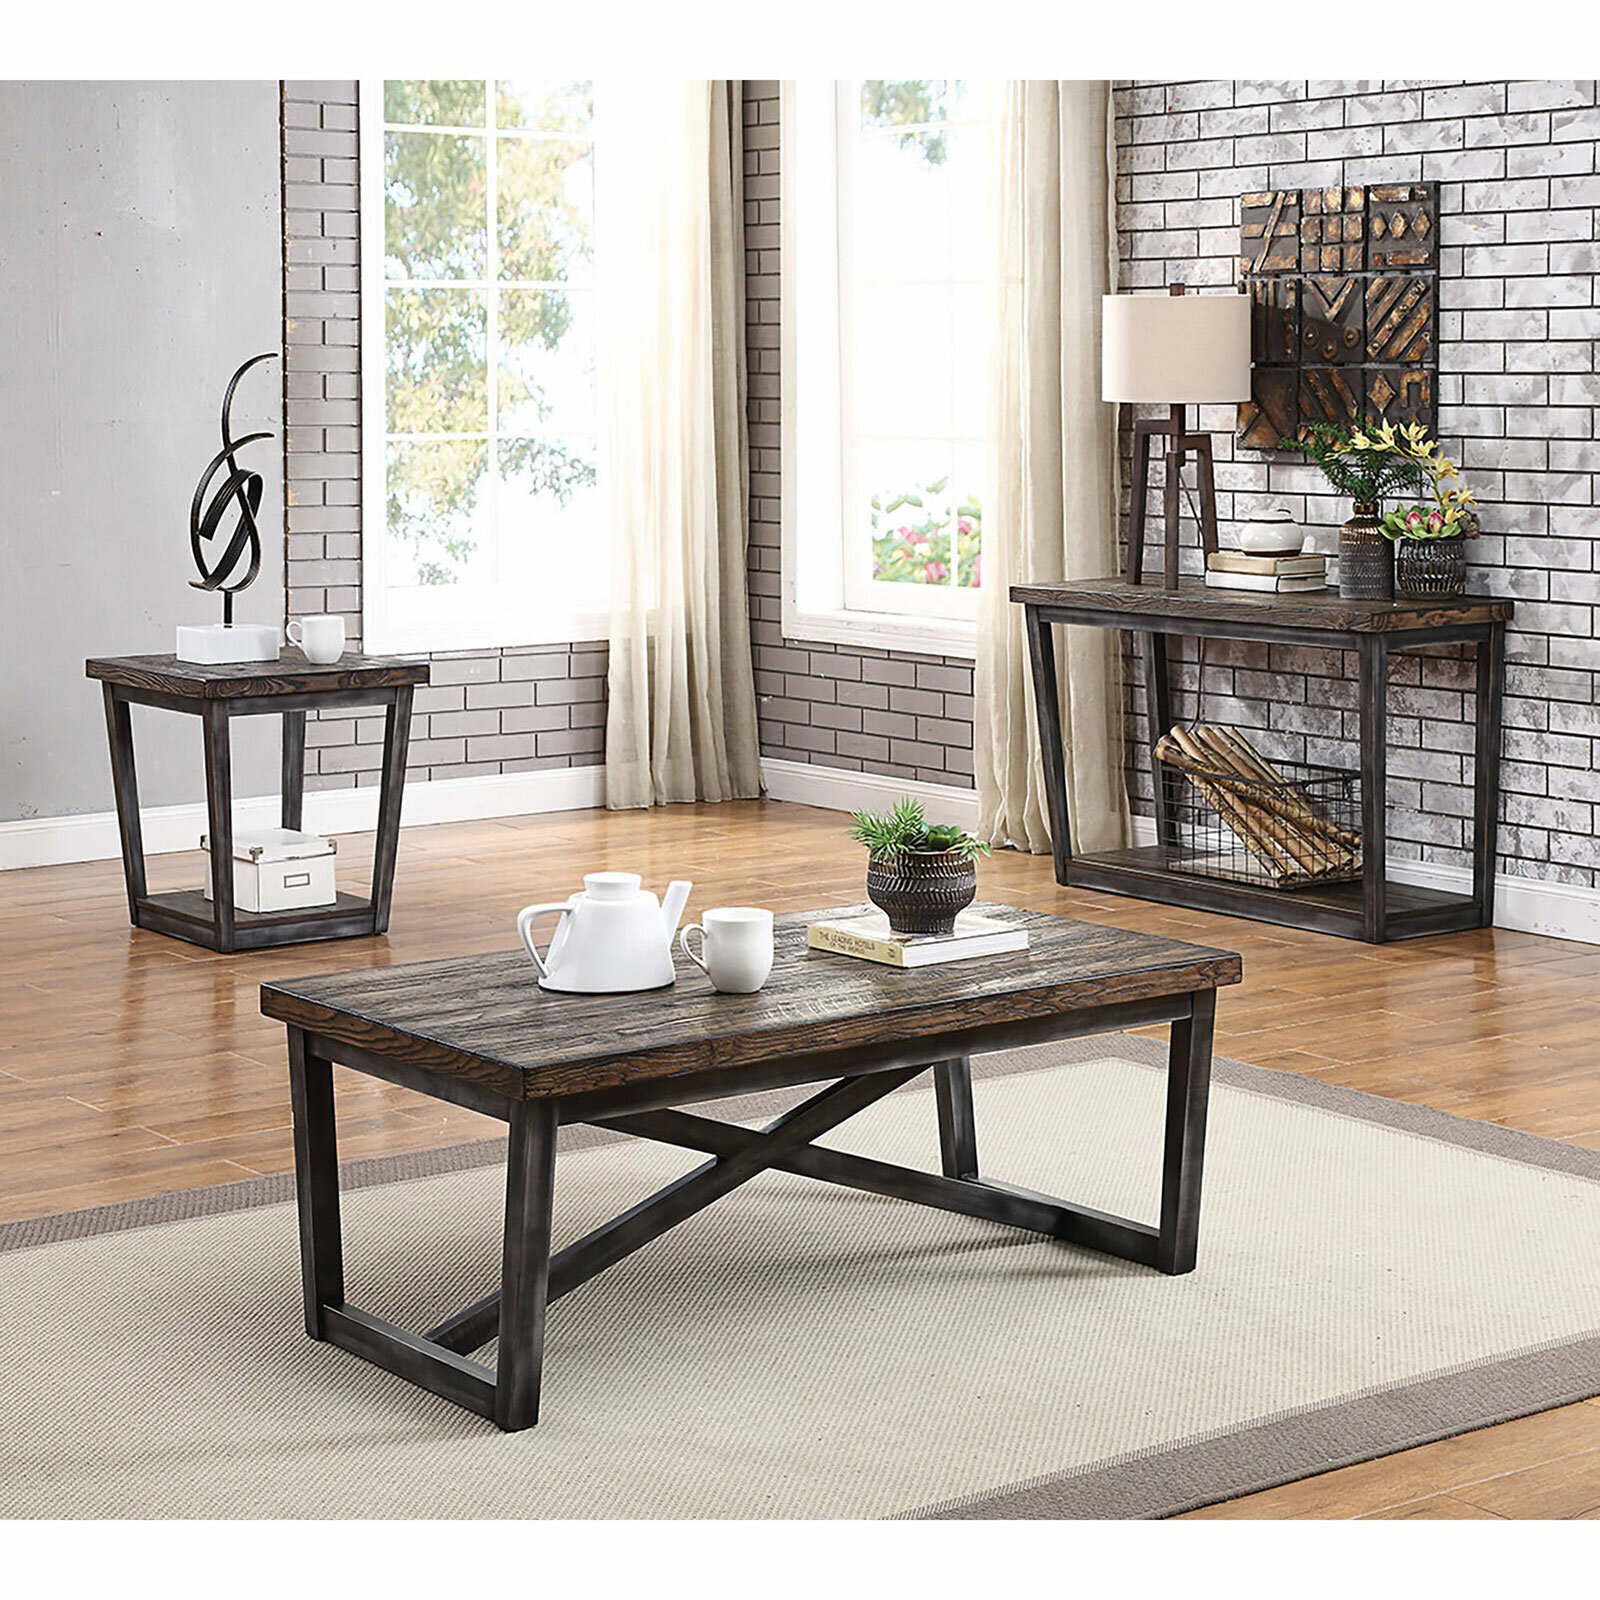 Gracie Oaks Clarkson 3 Piece Coffee Table Set Wayfair